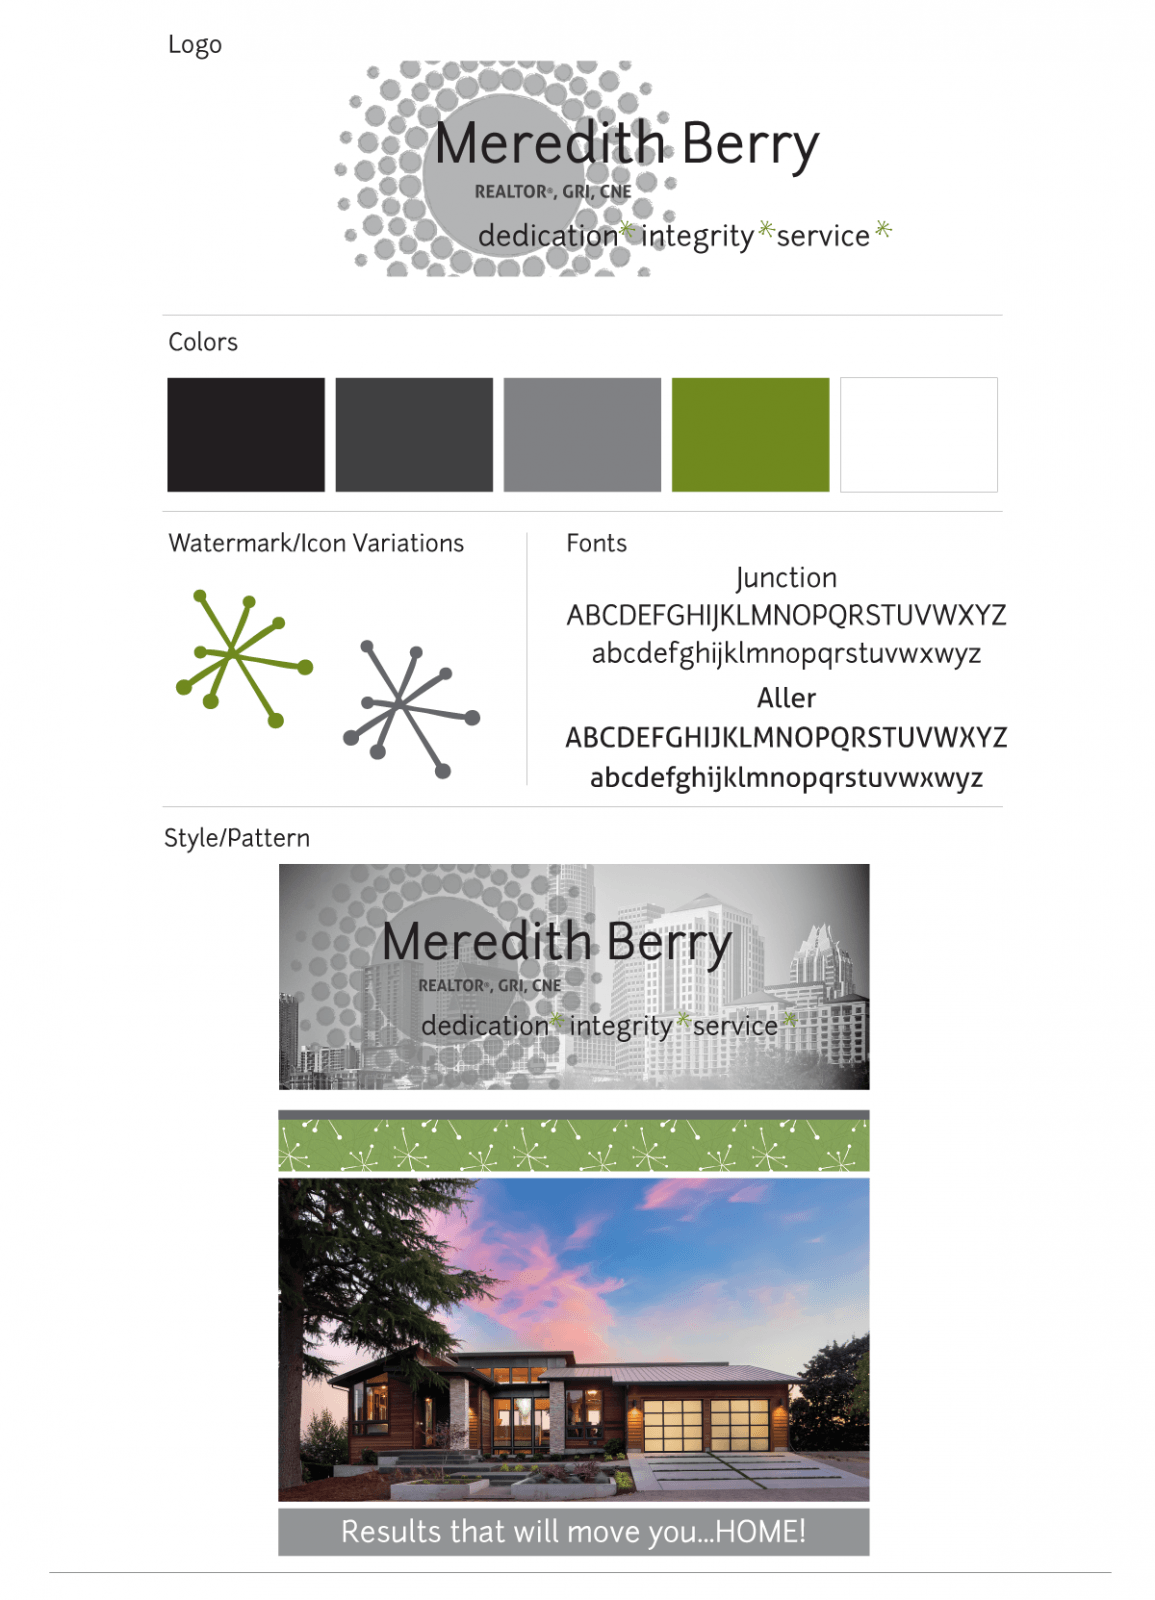 Design-Board-Web---Meredith-Berry_01